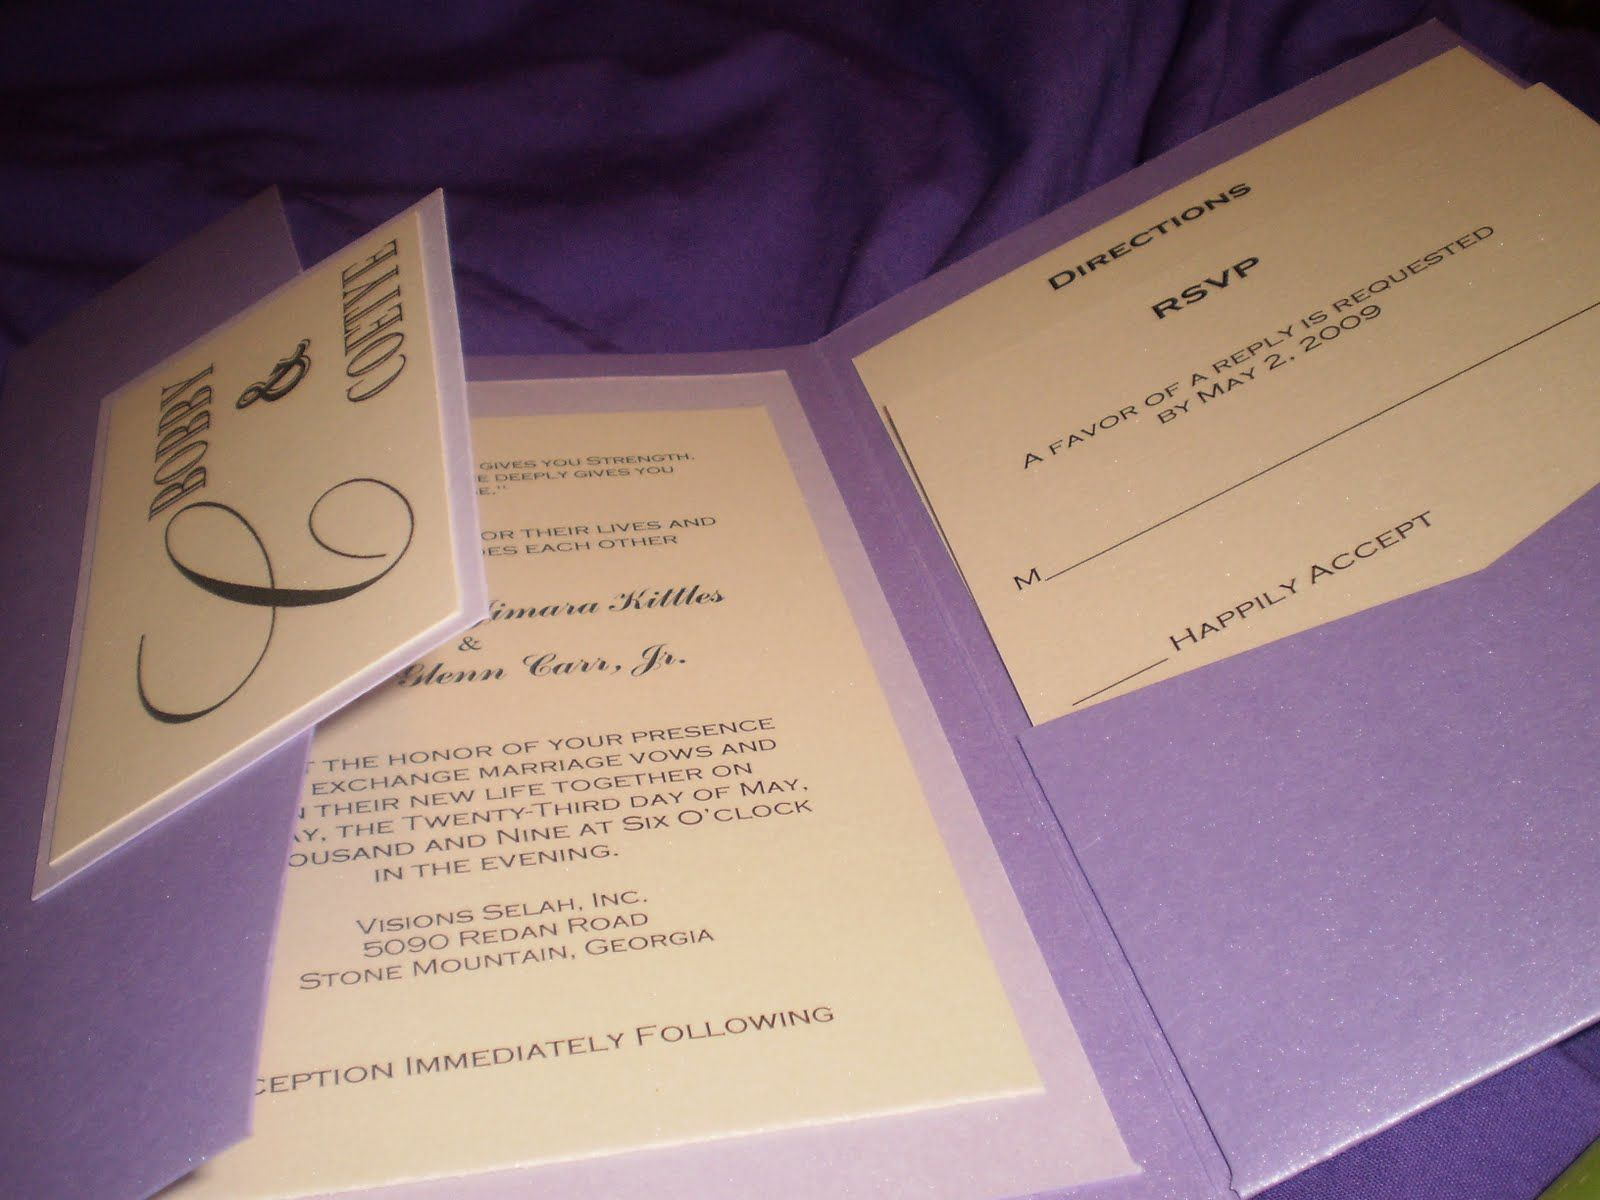 Get Beautiful Invitation Cards Printing With Die Cut And Custom Options At